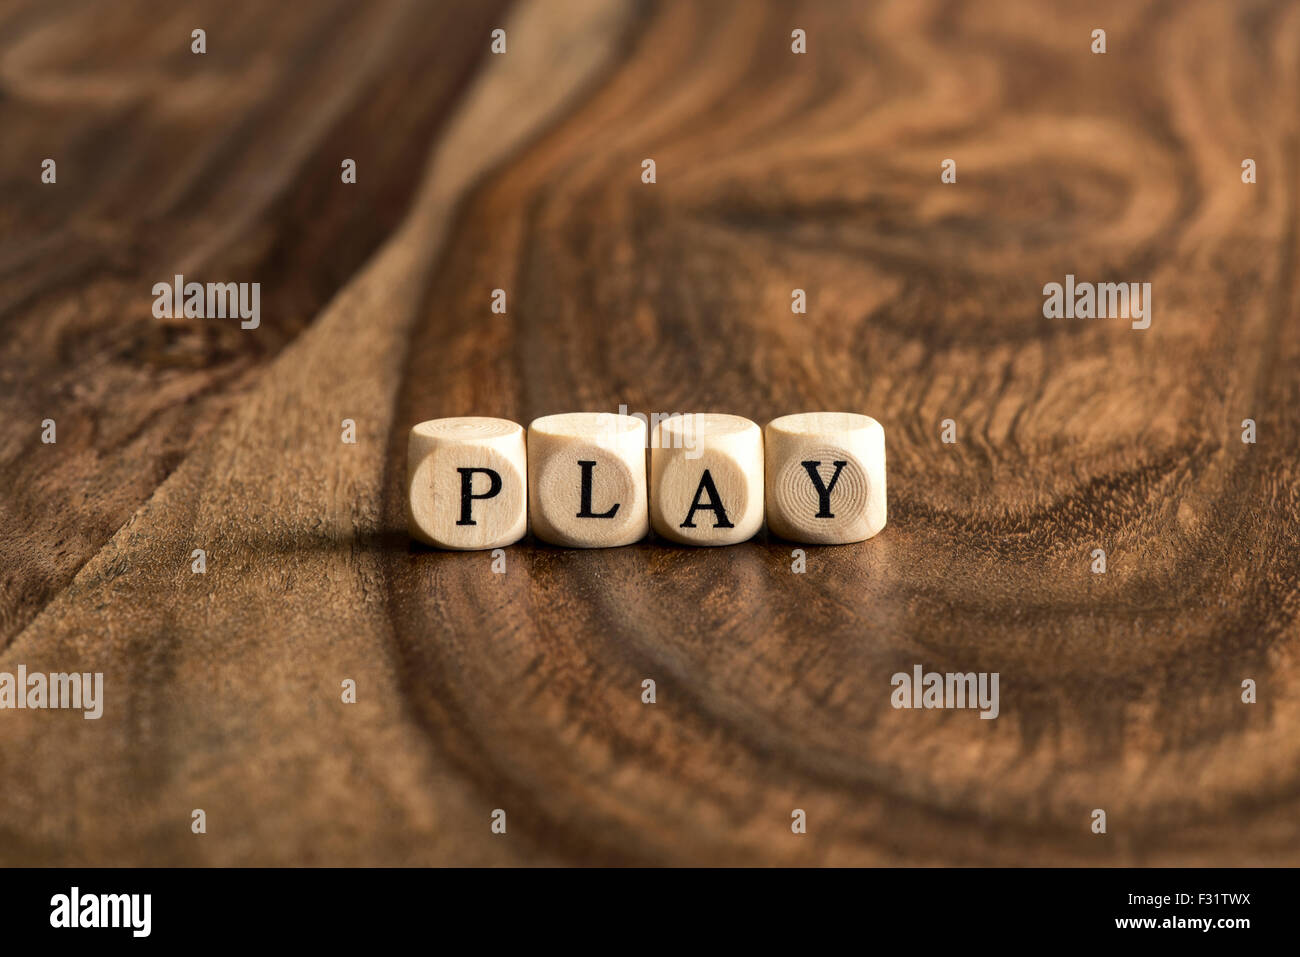 PLAY word background on wood blocks - Stock Image